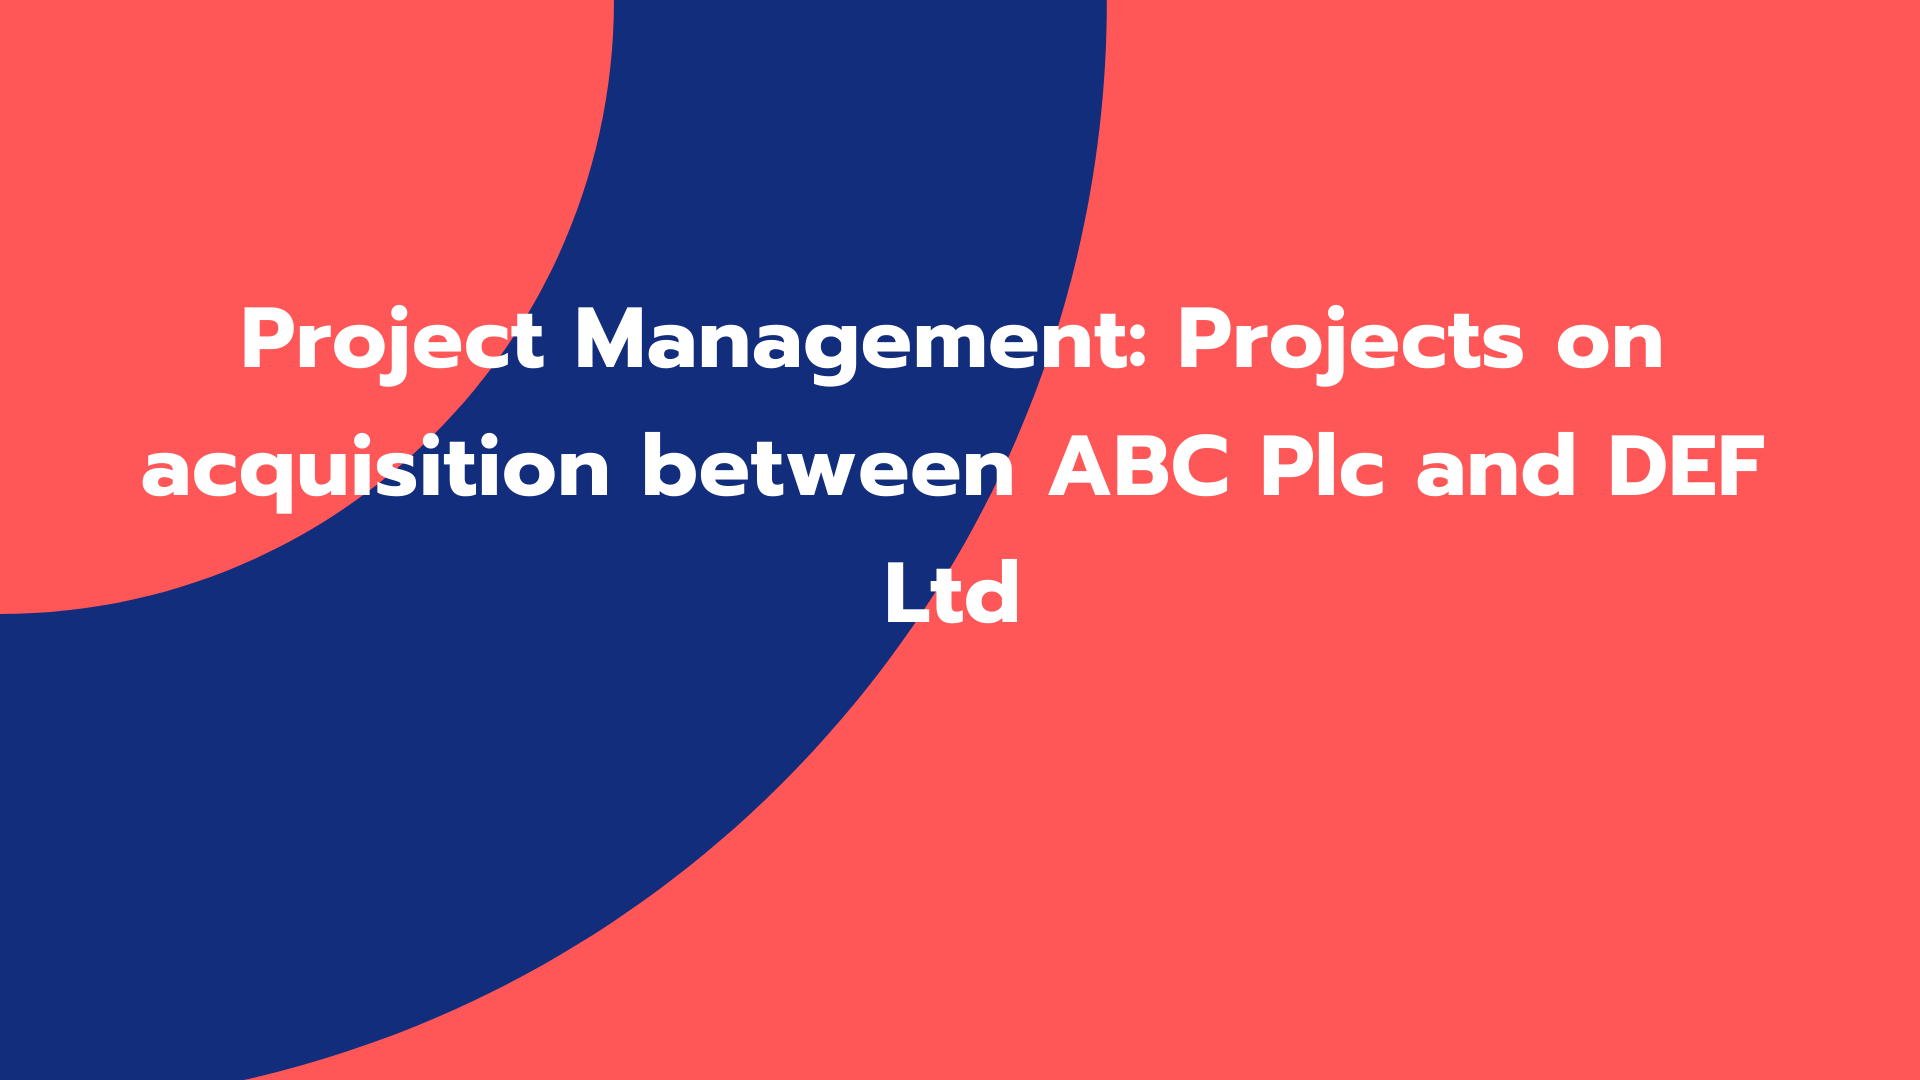 Project Management: Projects on acquisition between ABC Plc and DEF Ltd